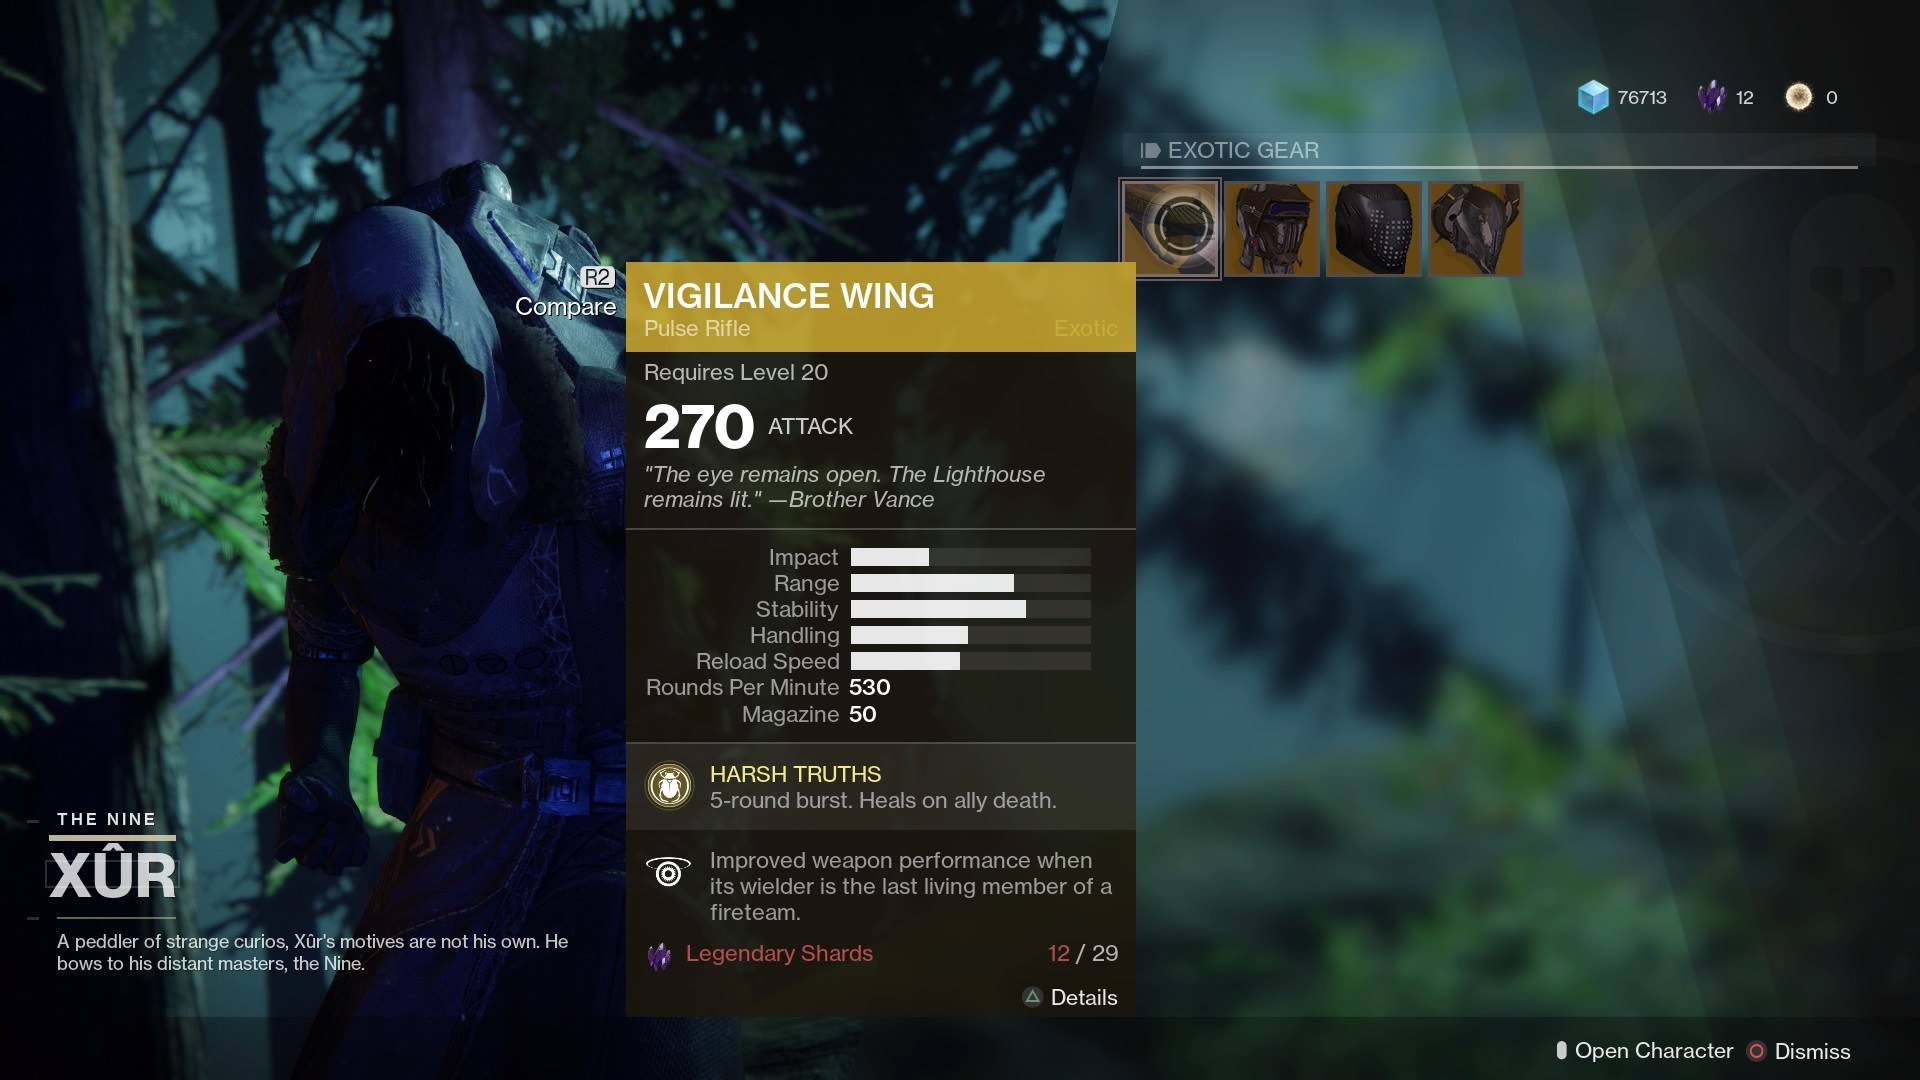 Xur Xur S Location For The Weekend Of 10 6 Vgculturehq